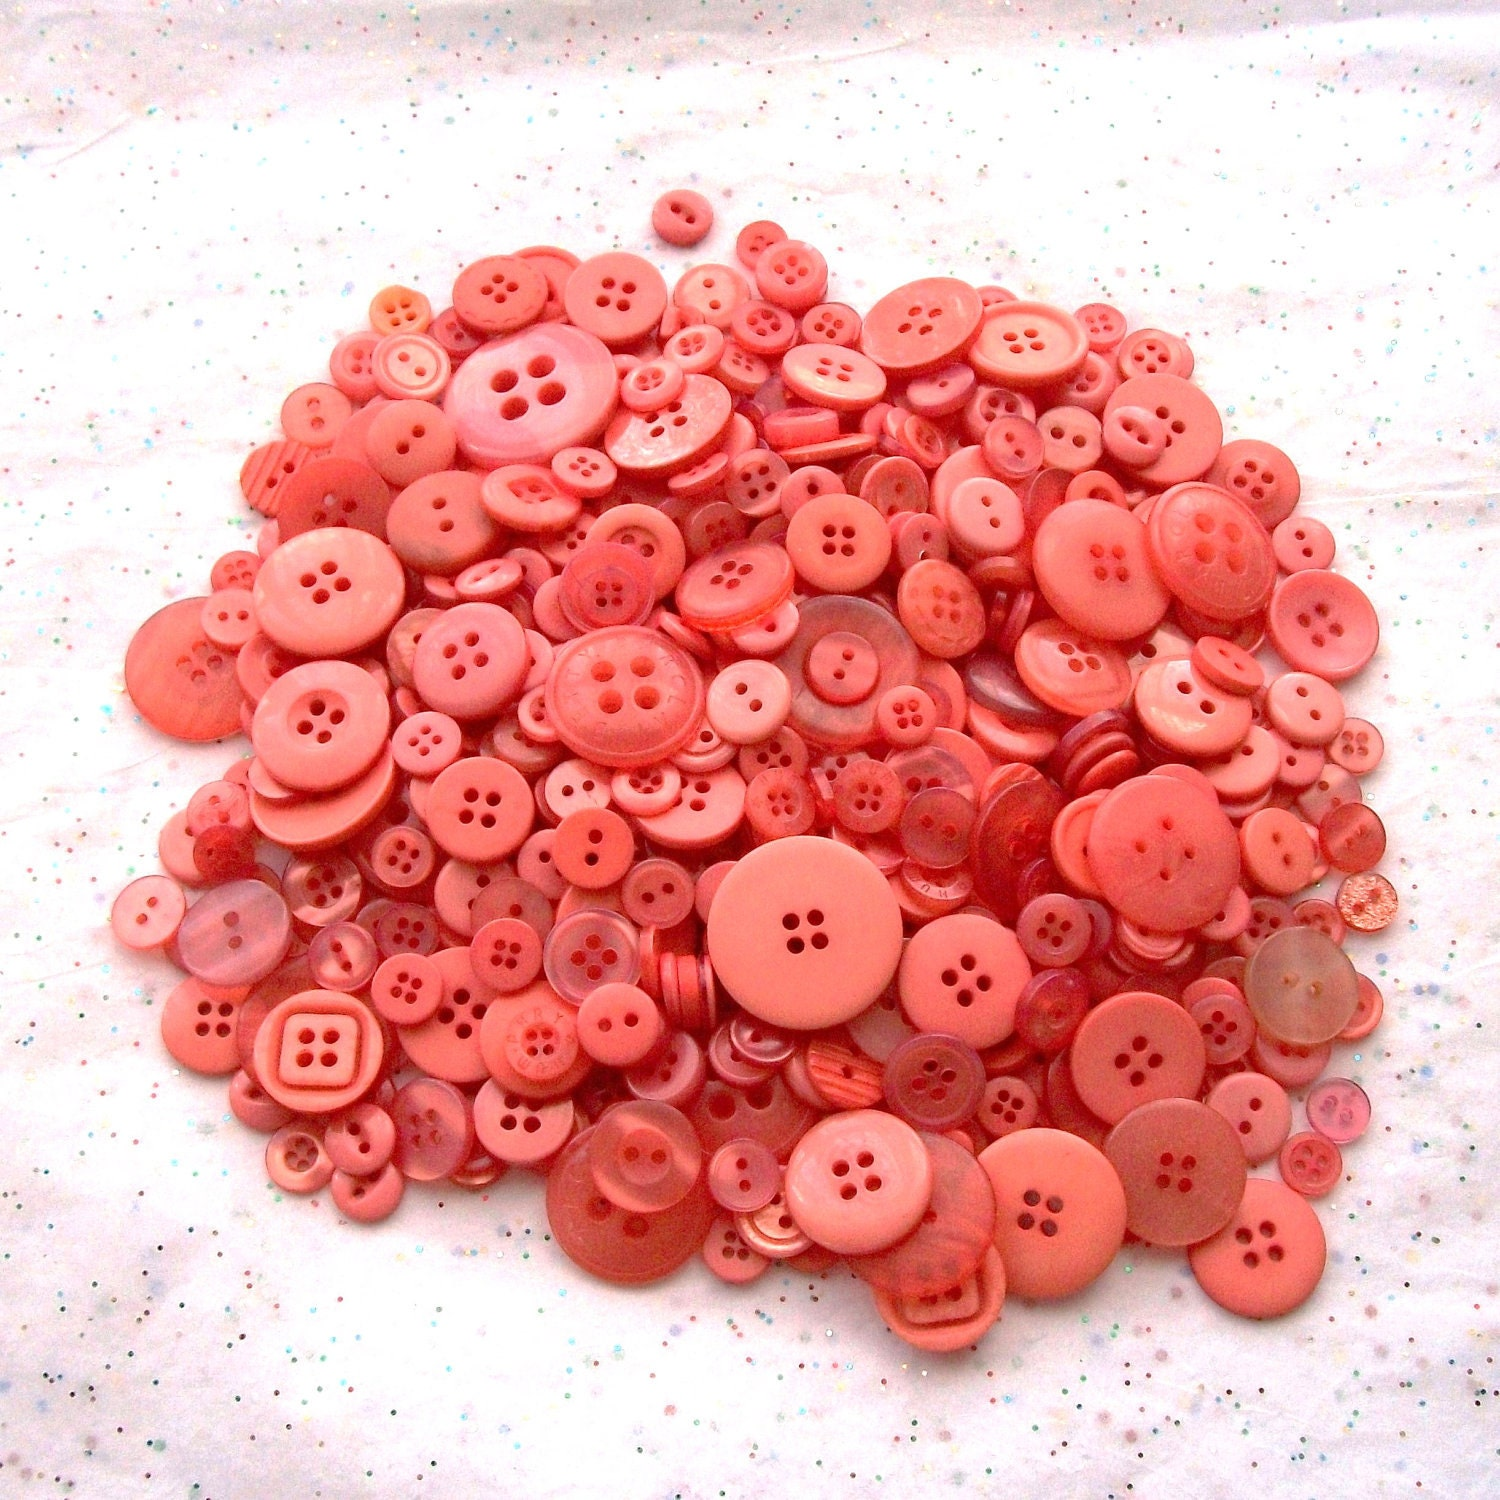 Coral-colored Buttons